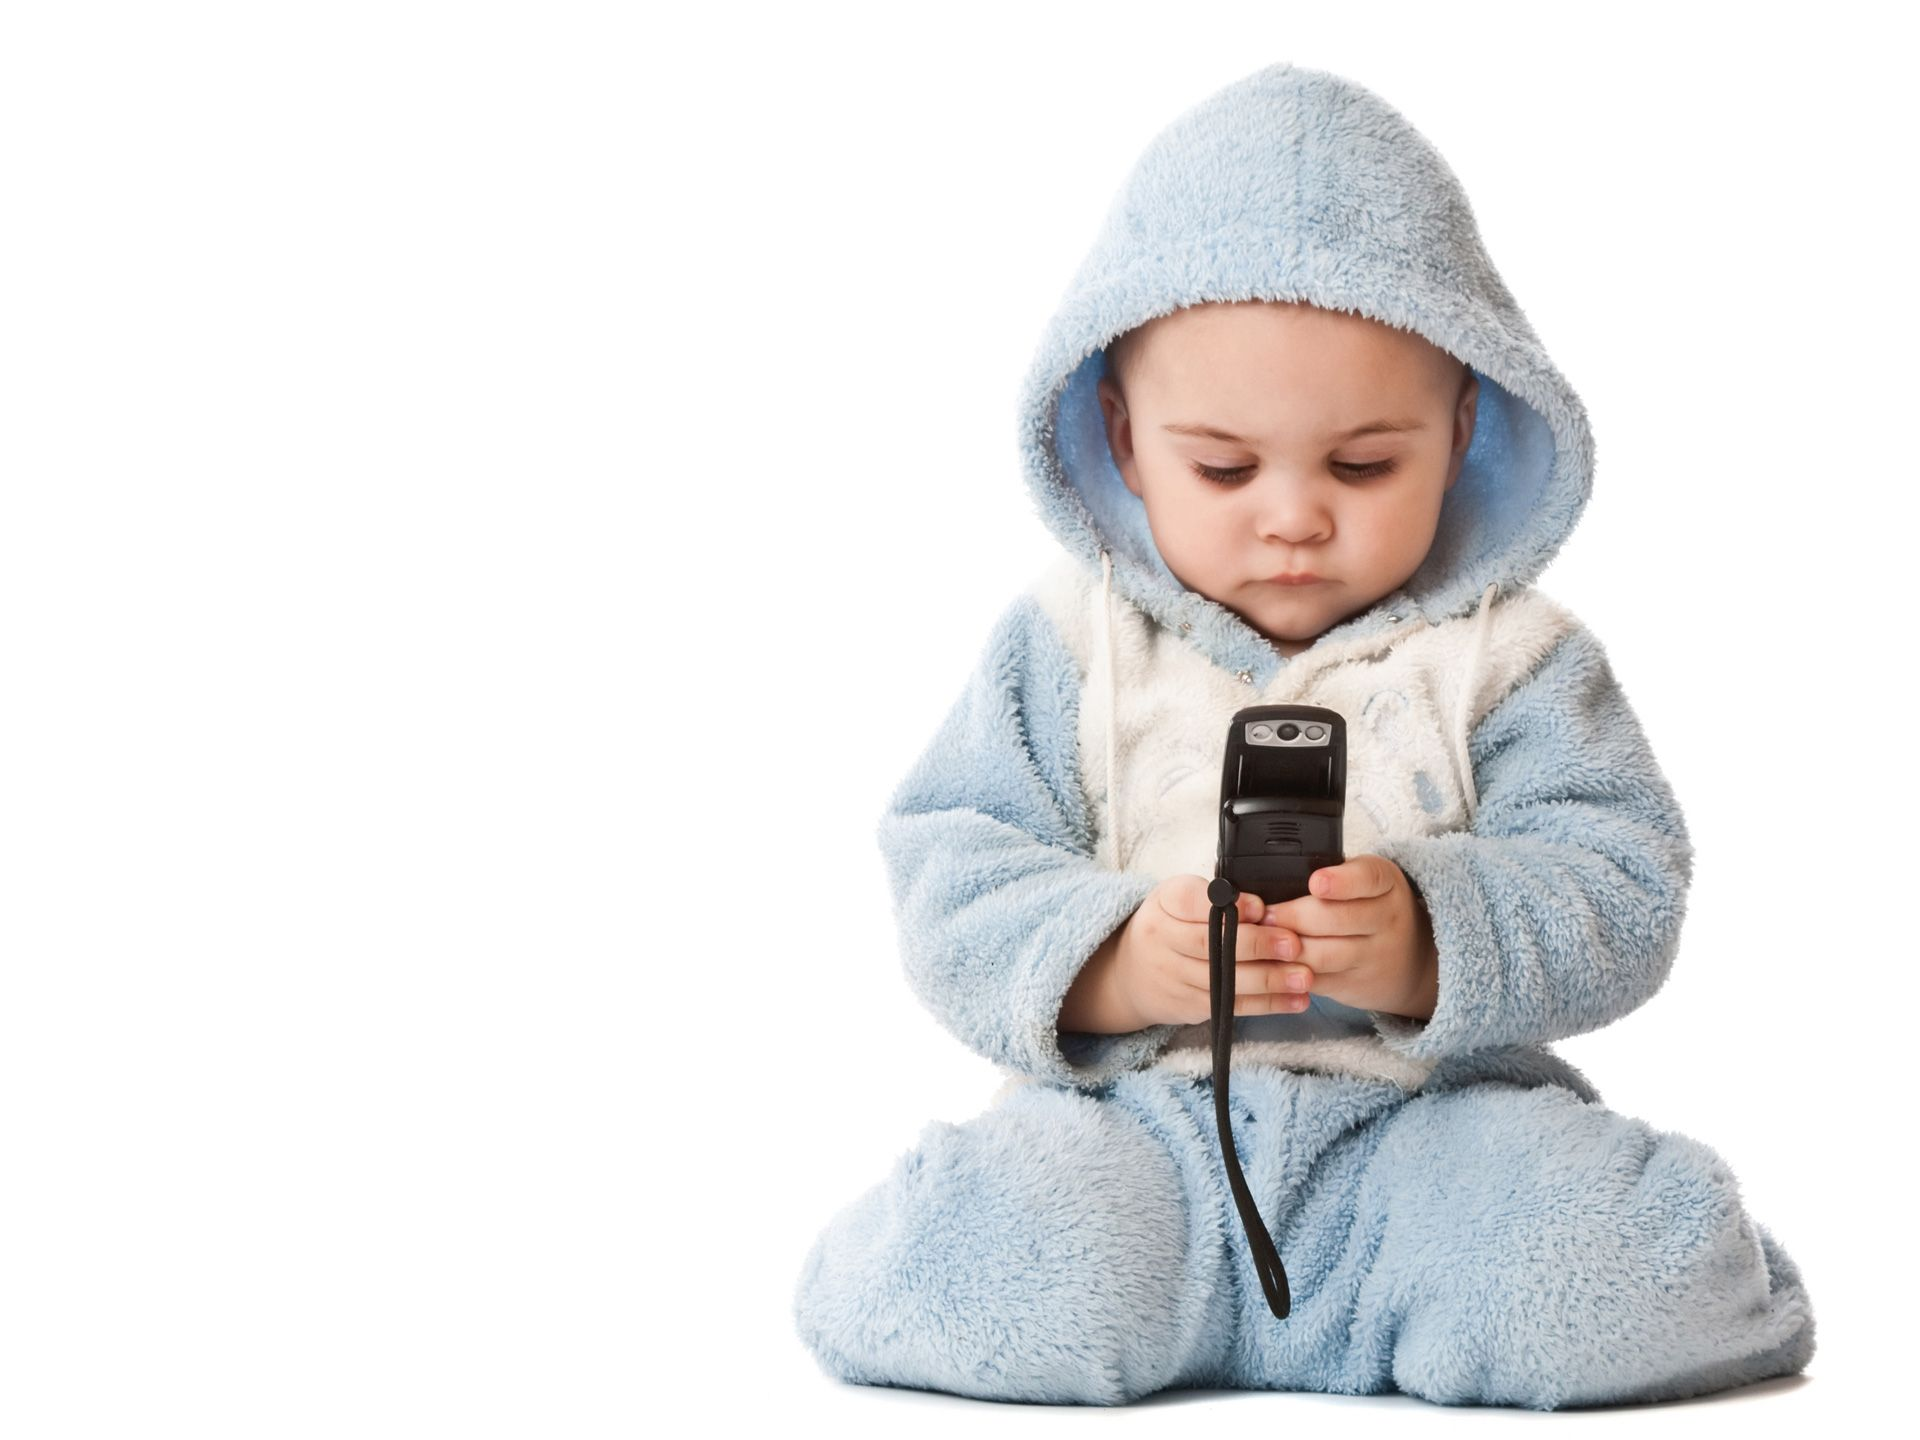 Get A Call With Your Love Ones Internationally Makeaninternationalcall Cute Boy Wallpaper Baby Boy Mobile Cute Baby Boy